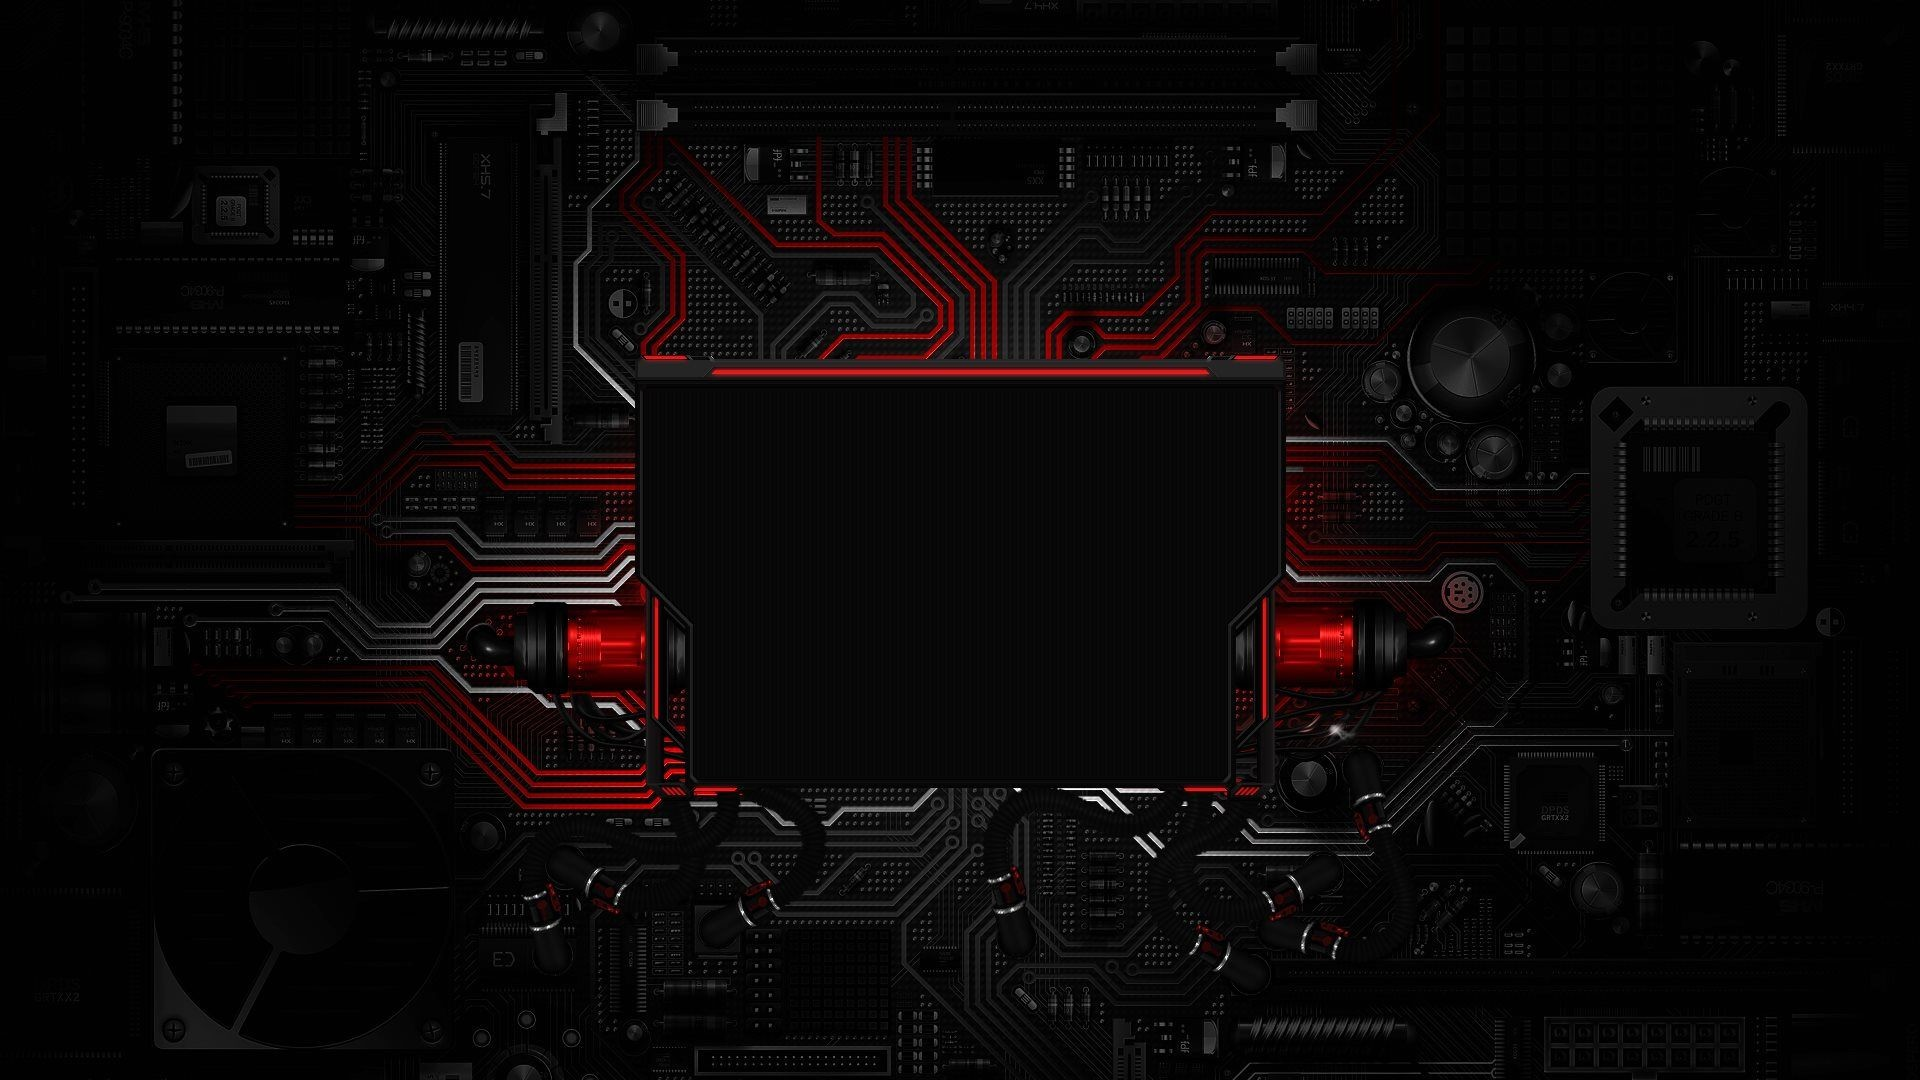 1920x1080 Top Red Cubic Tech Wallpapers Images for Pinterest